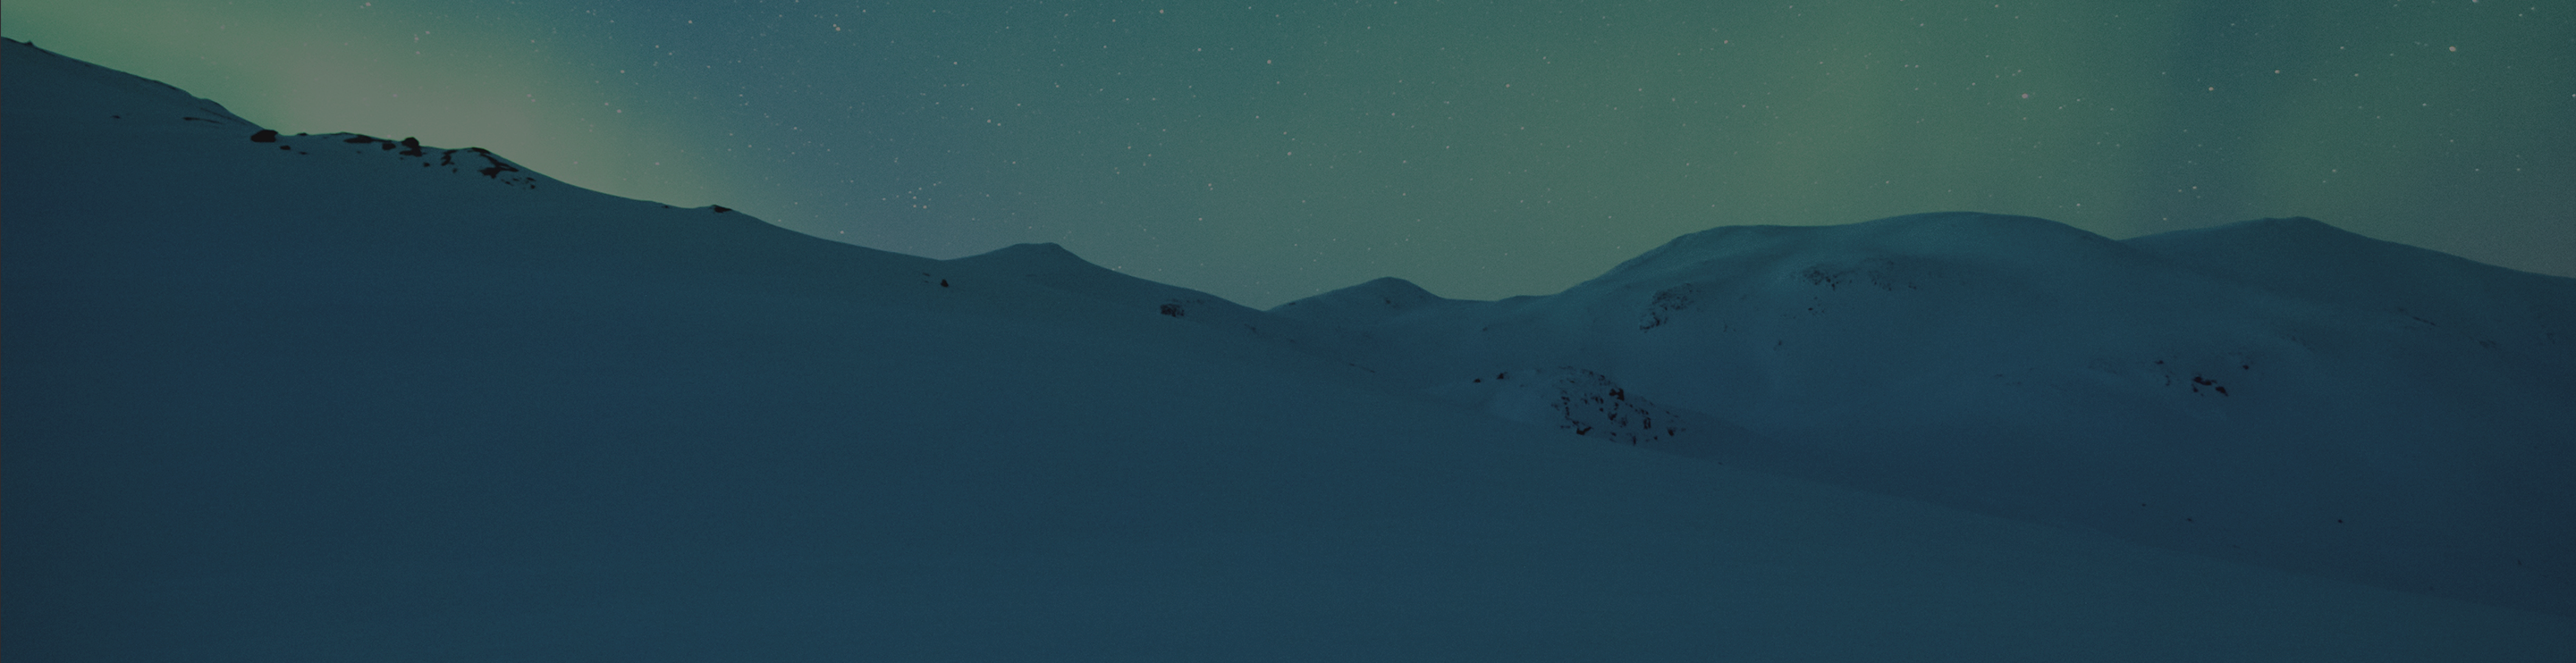 Snow-covered mountain slopes with the northern lights in the background.